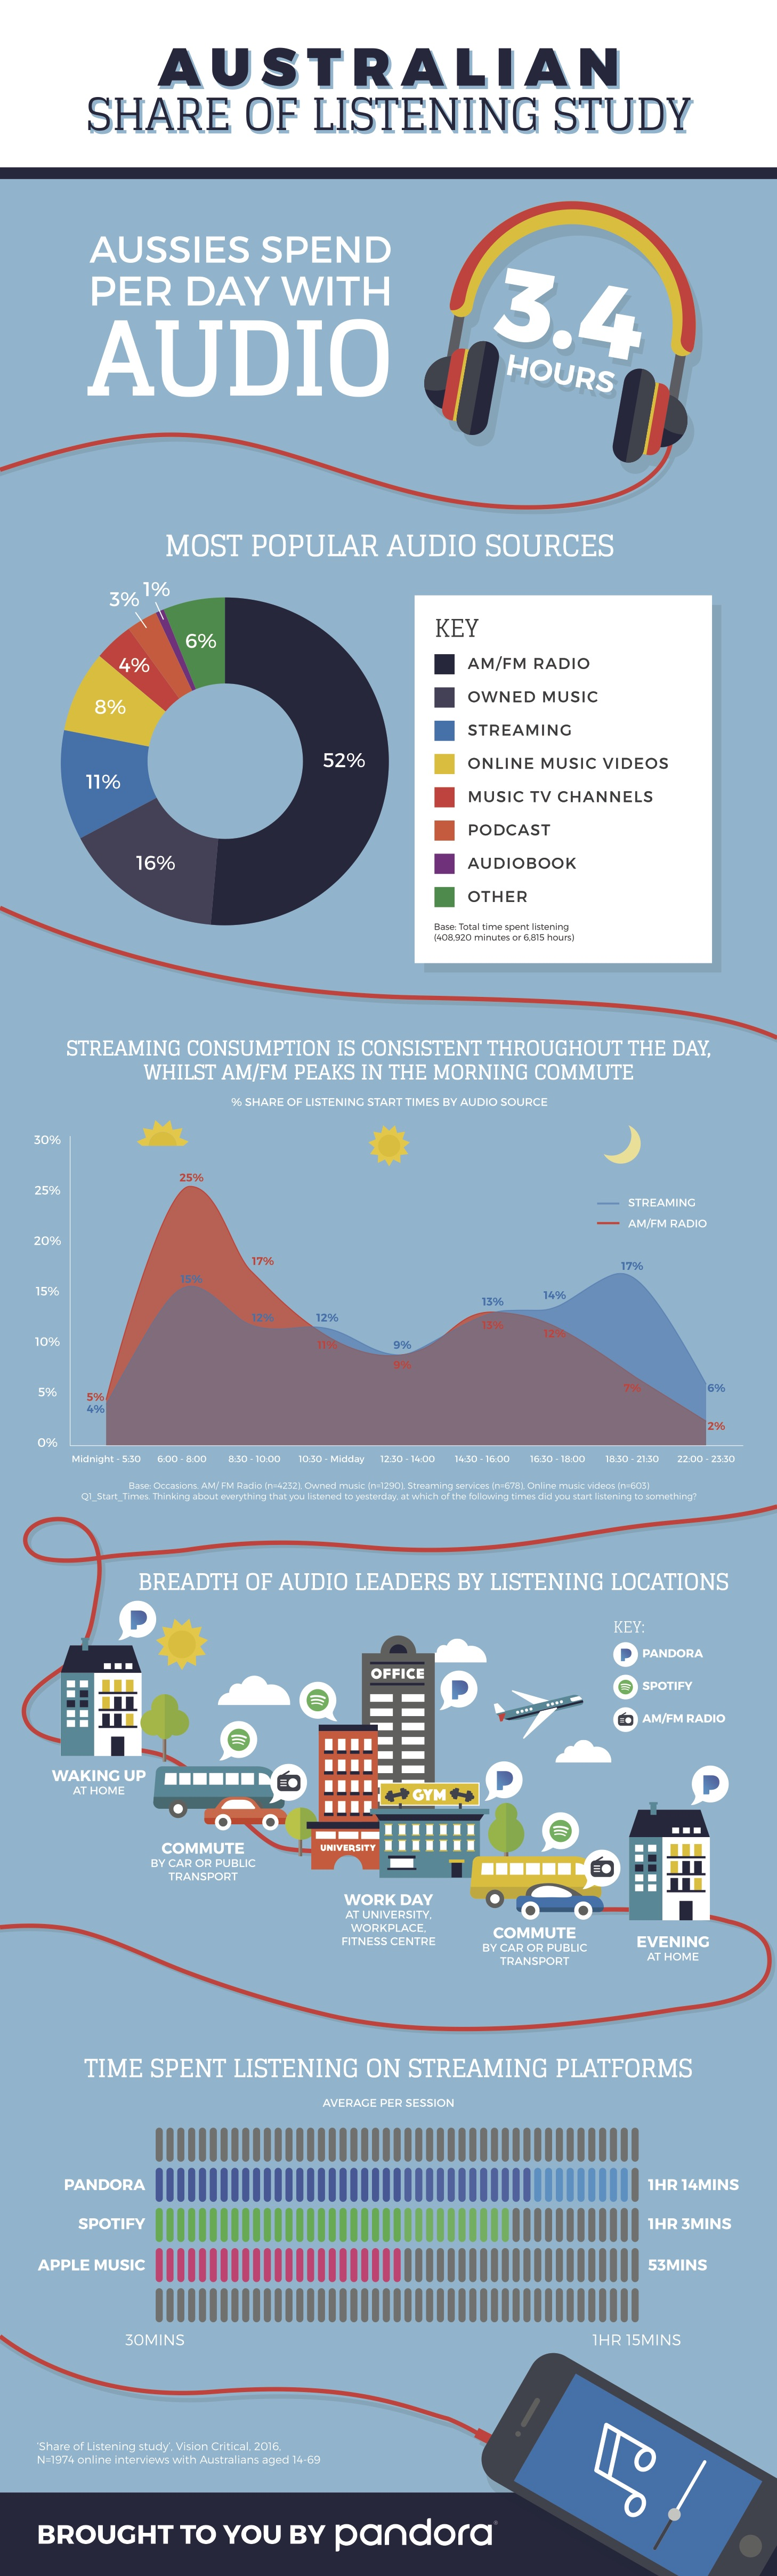 ShareOfListening_infographic_FINAL